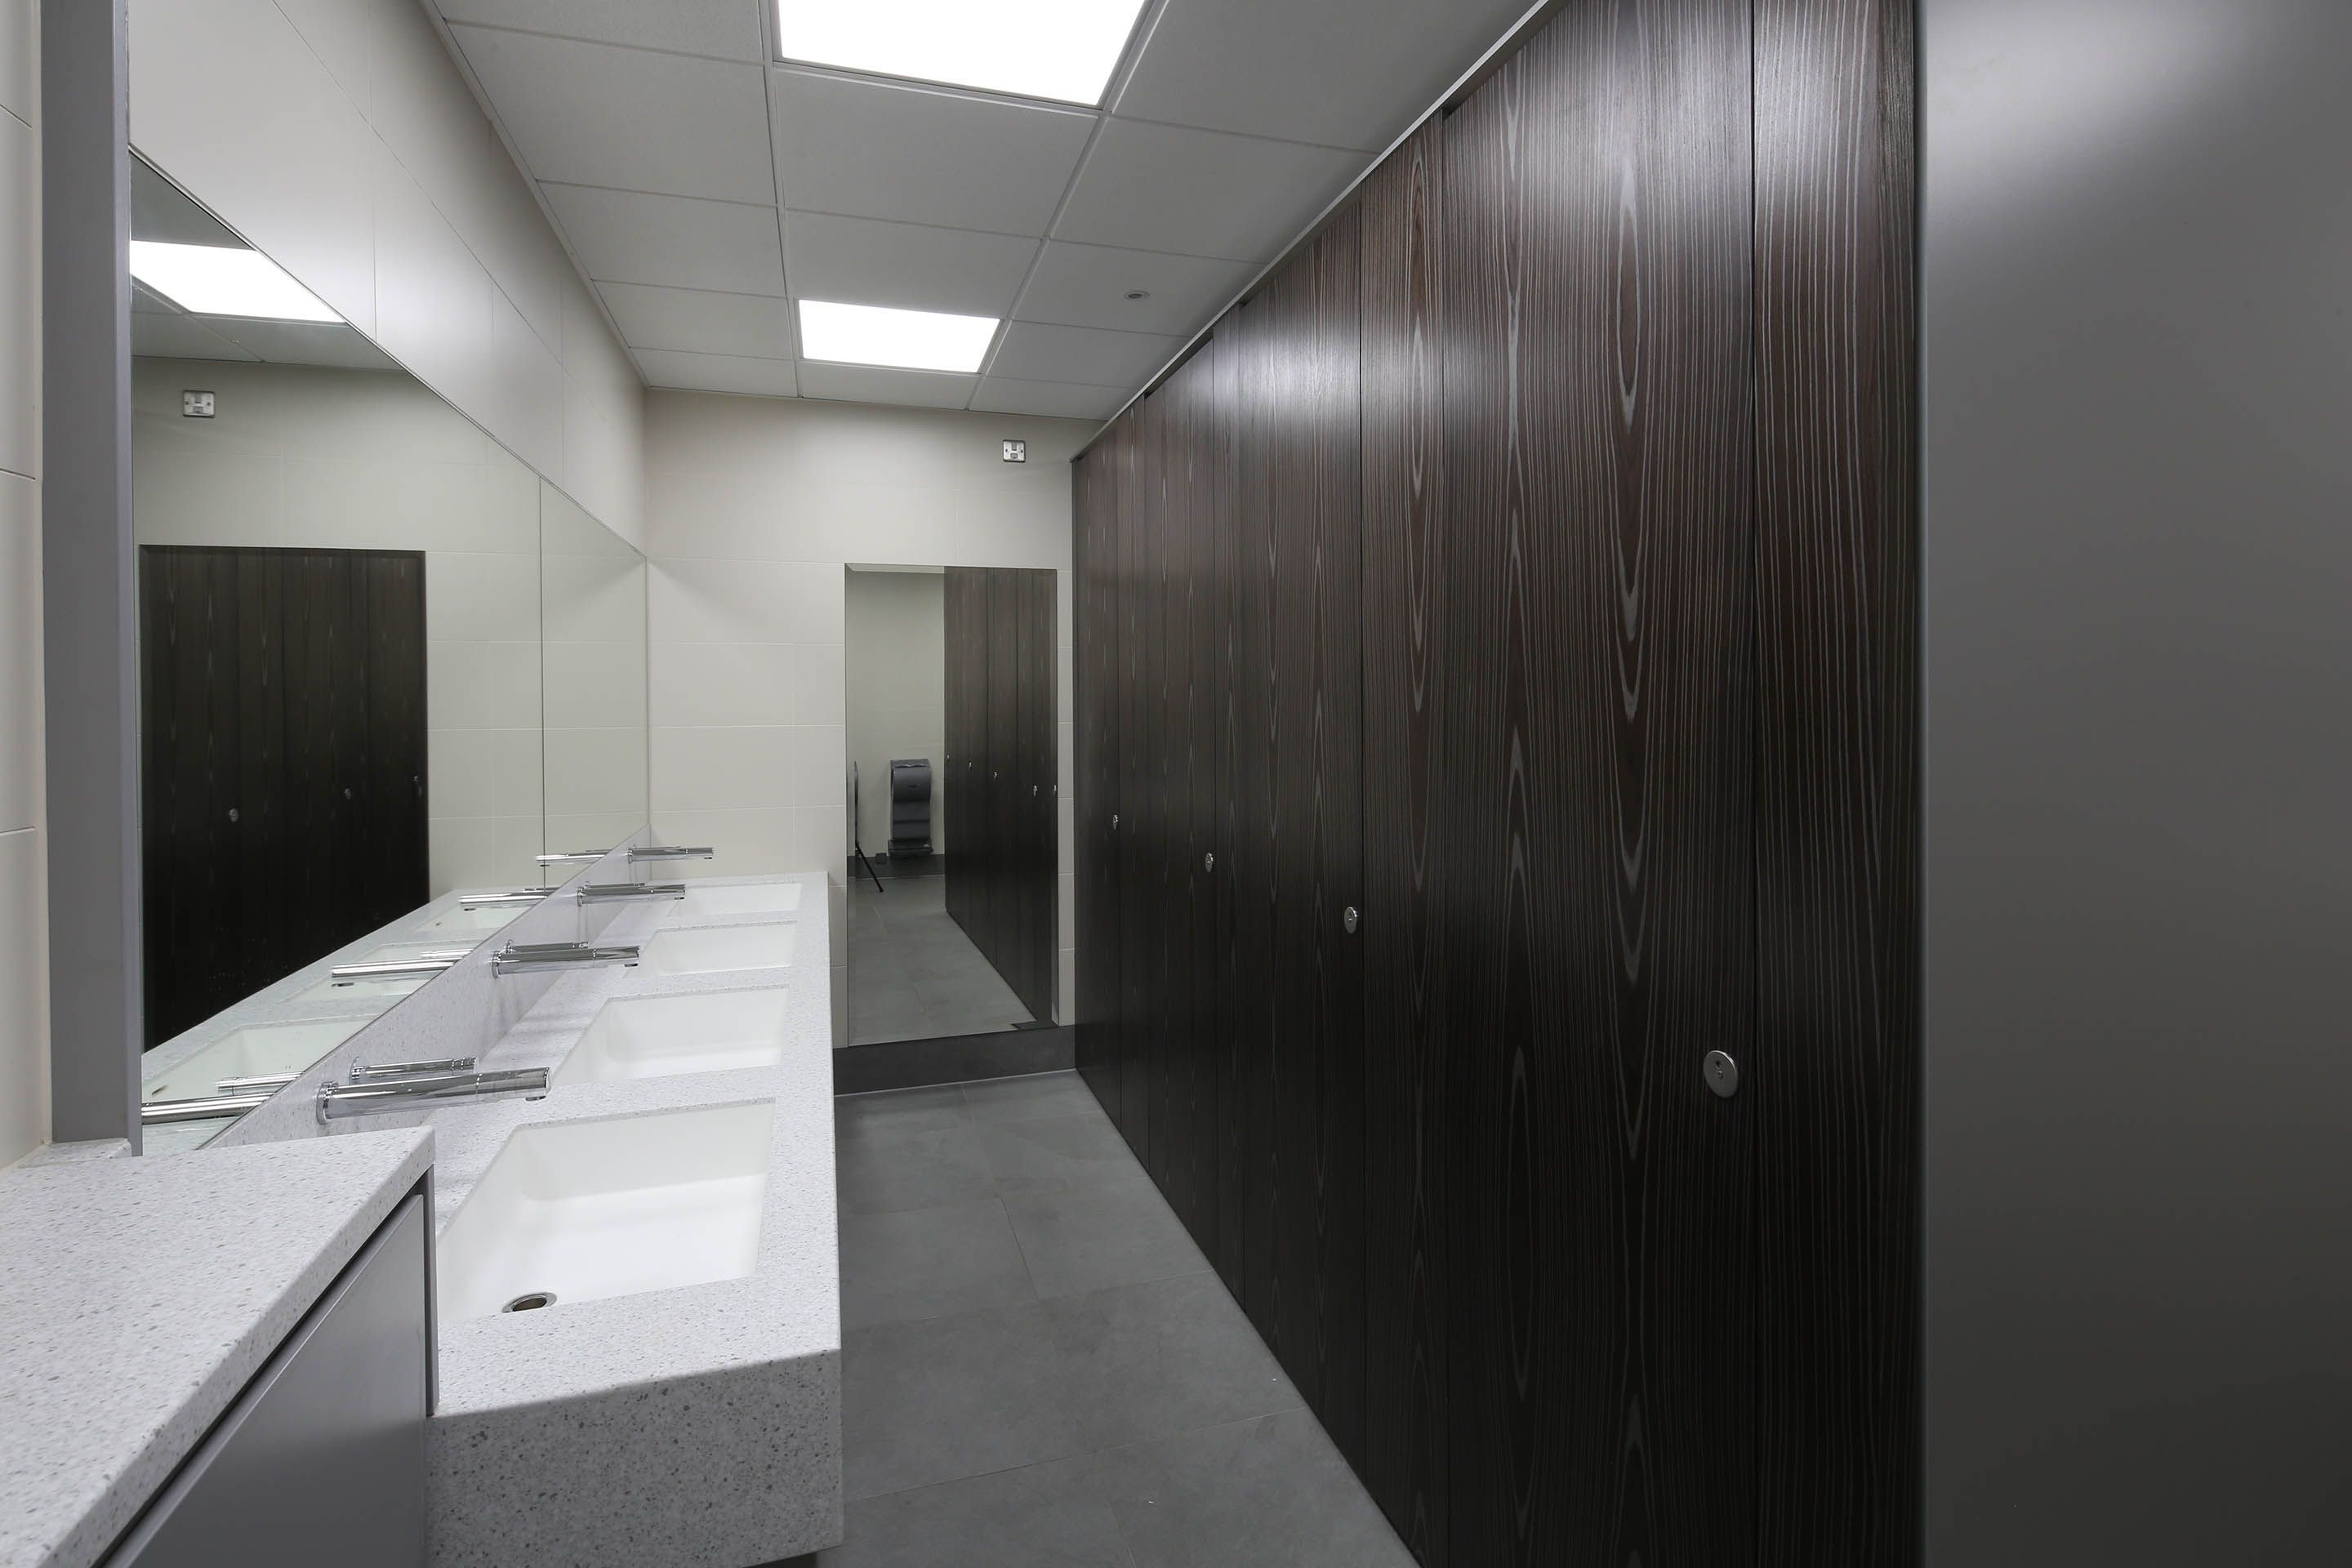 Partitions And Flooring That Will Go Into Mens Room -